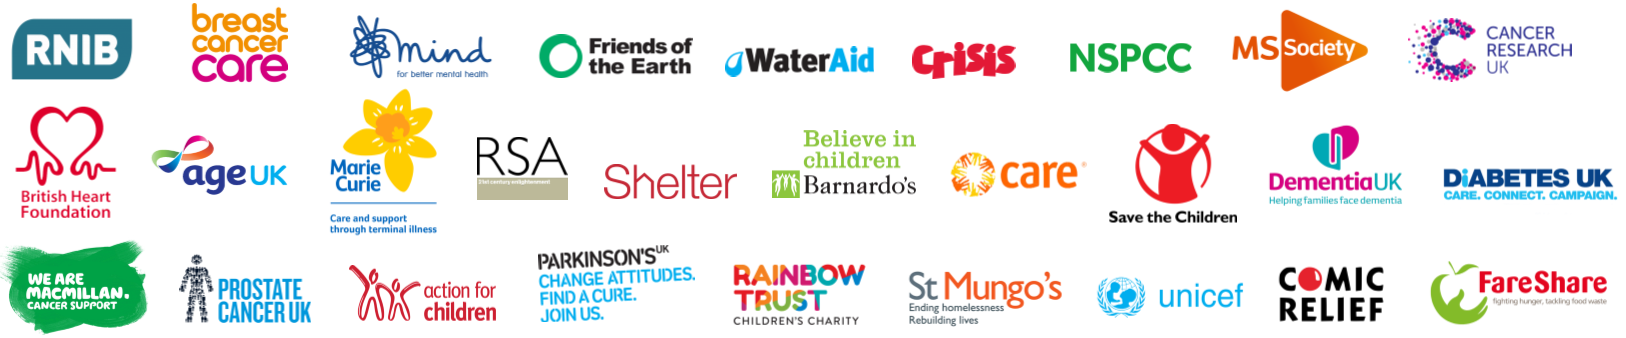 low priced c1b4d 8d132 Every year we recruit for more than 500 charities and not for profit  organisations of all shapes and sizes - here are just a few of the most  familiar names